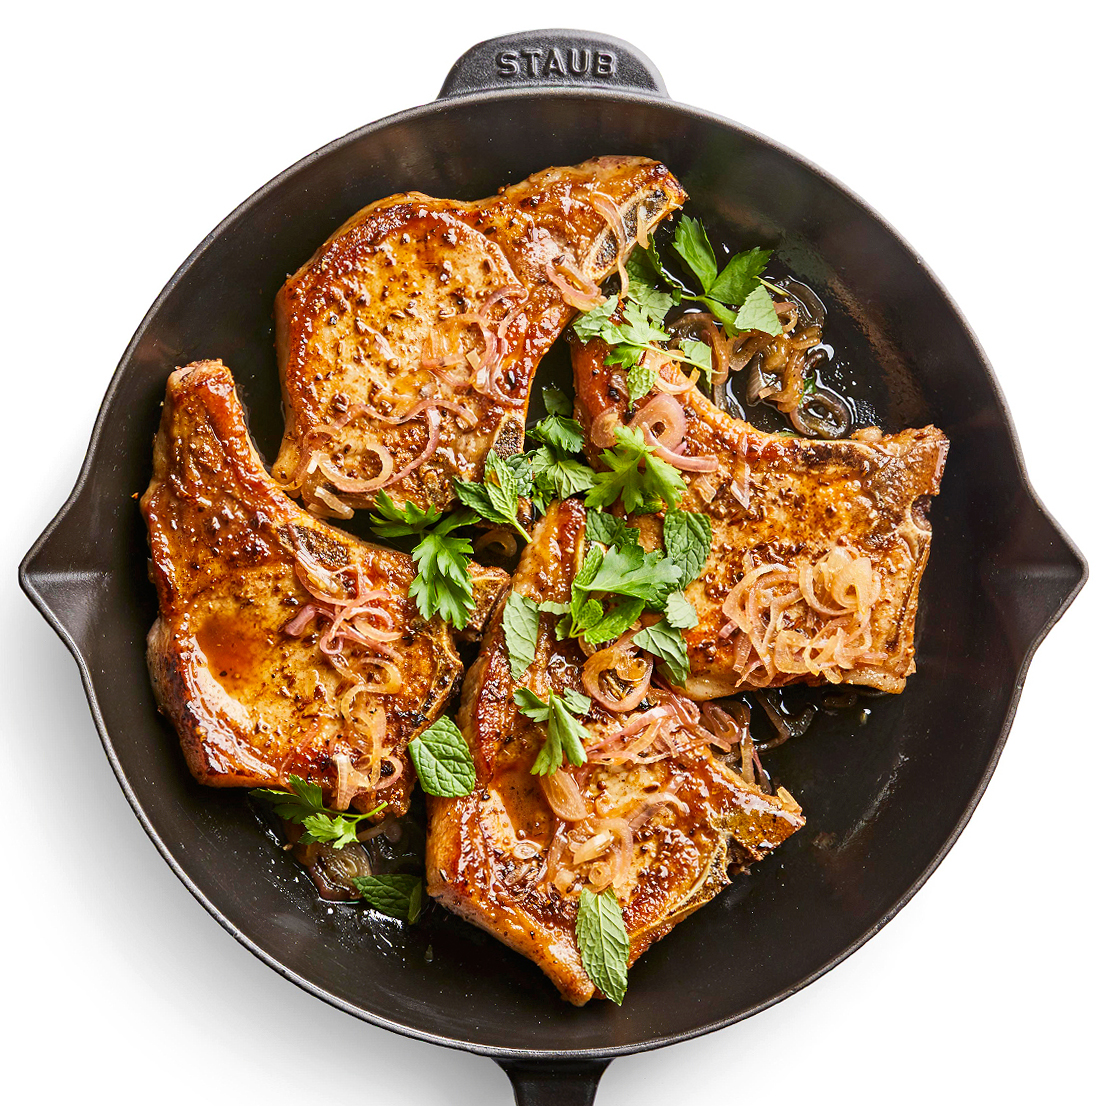 Spice-Rubbed Pork Chops in pan